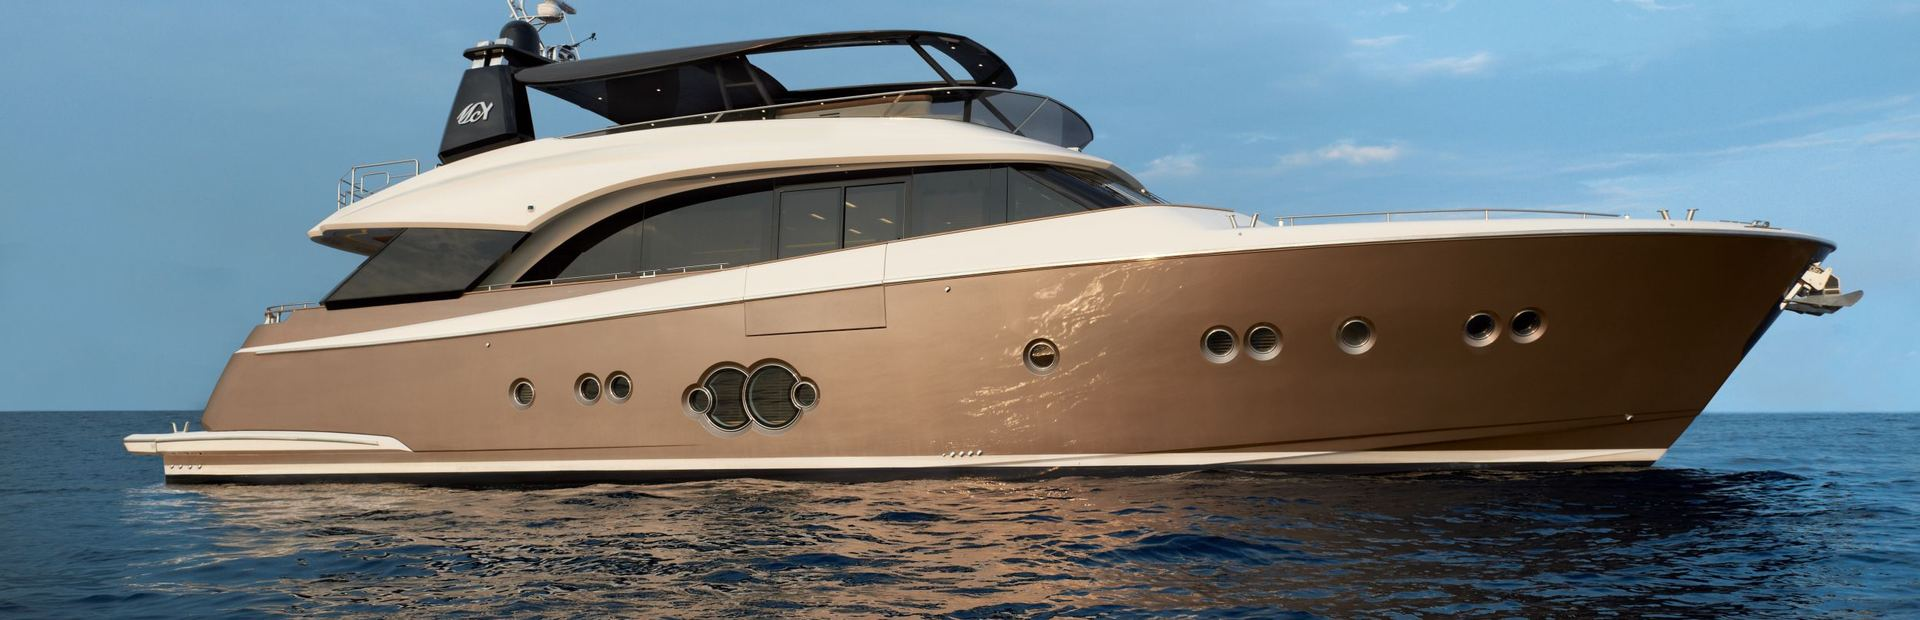 MCY 86 Yacht Charter